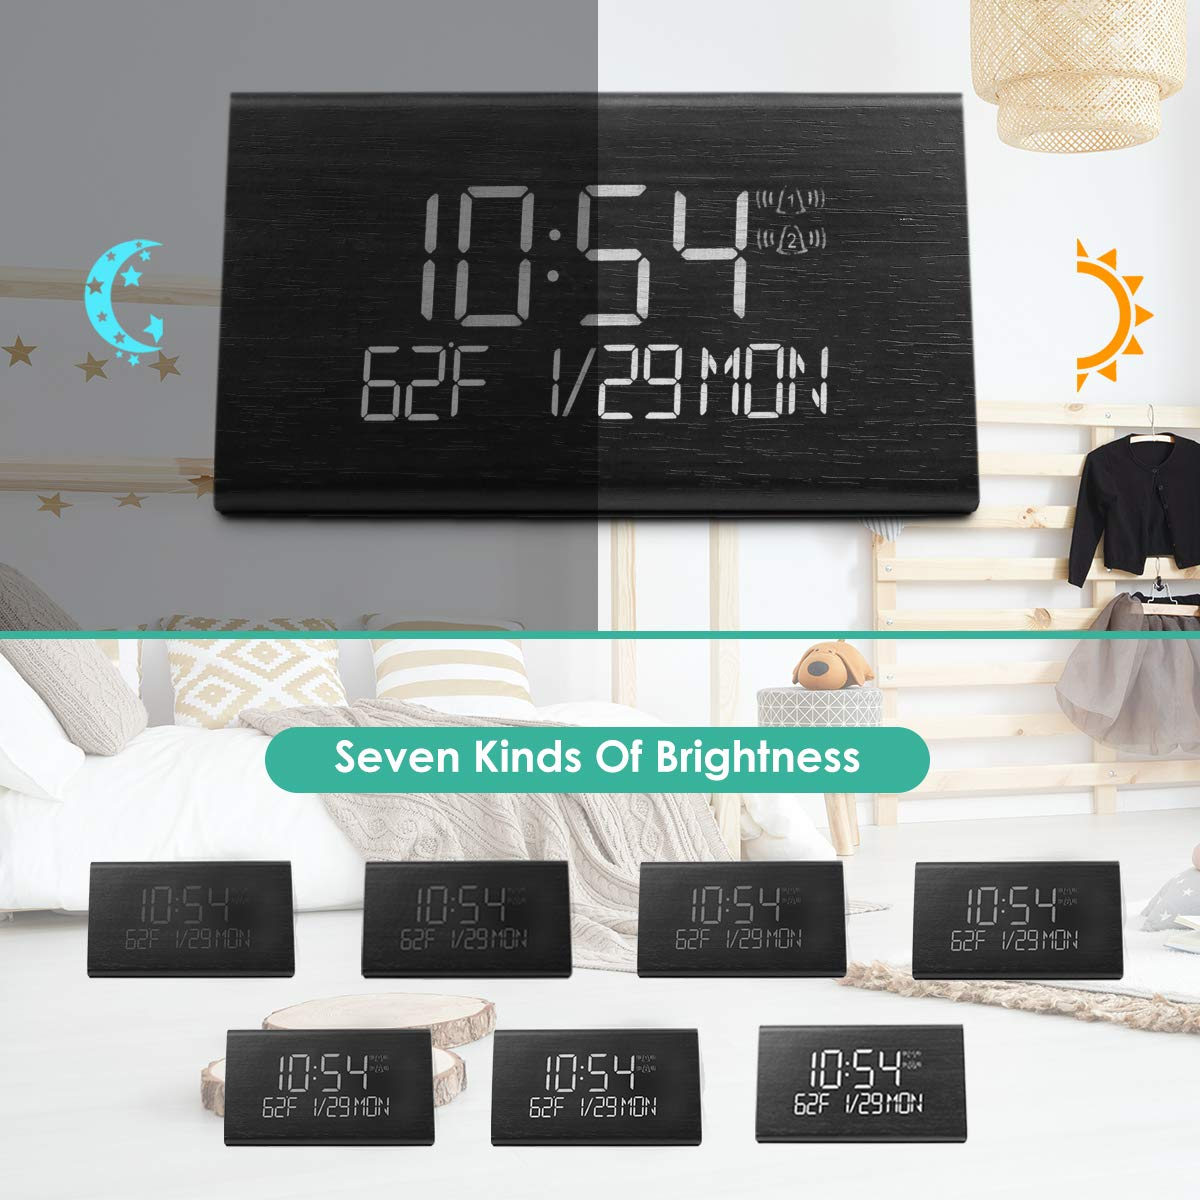 Amazon.com: Wooden Digital Alarm Clock with 7 Levels Adjustable Brightness, Voice Command Electric LED Bedside Travel Triangle Alarm Clock, Display Time ...